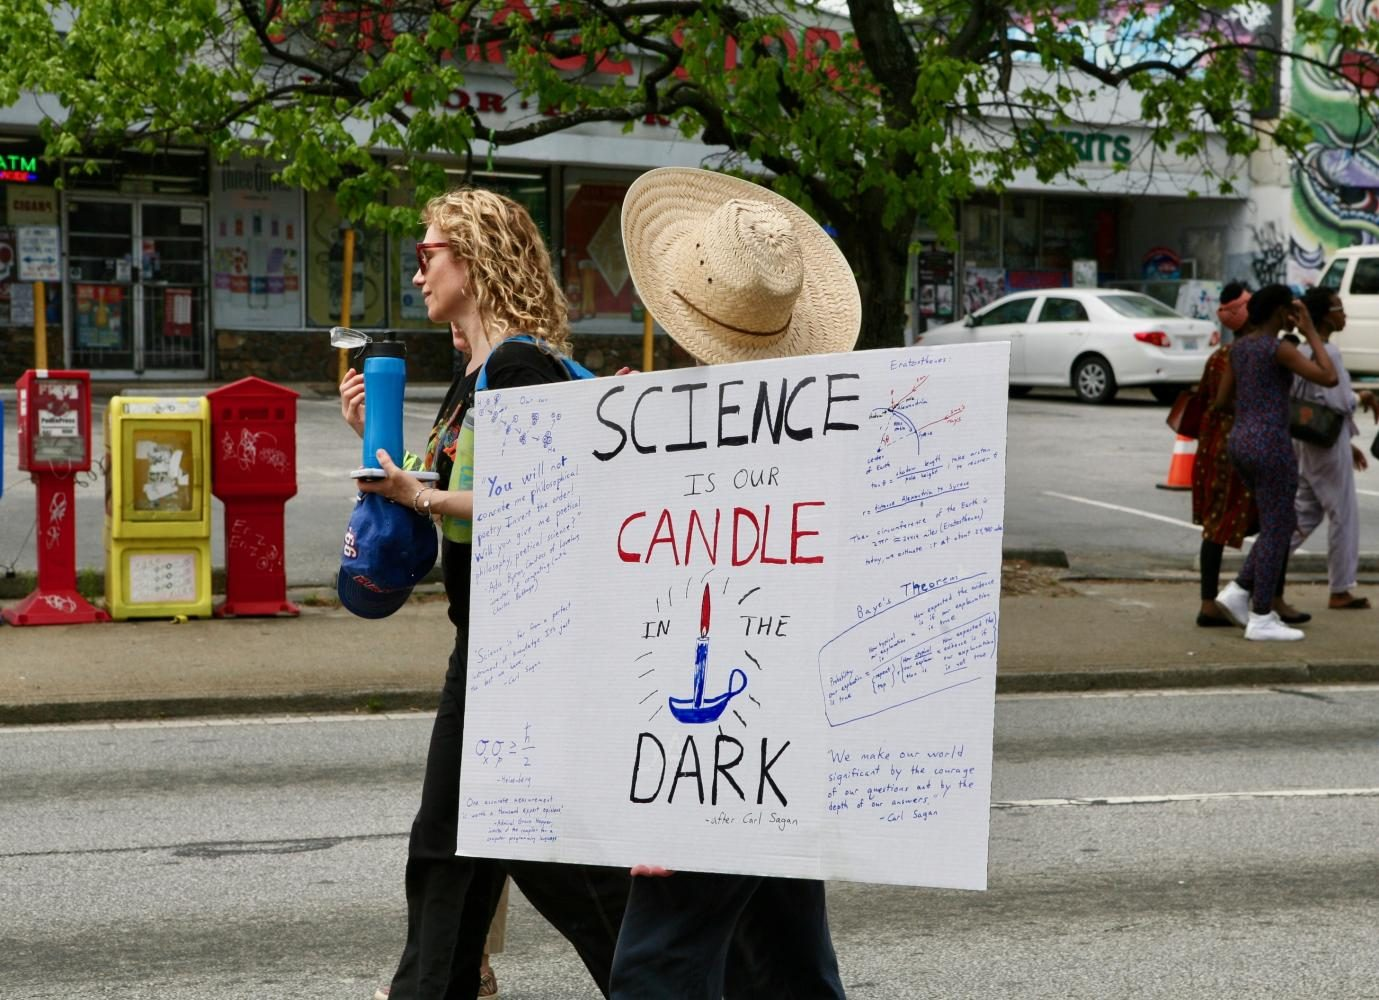 The march's overall purpose was to shed light on the importance of science in American society and policy. As, too many, science is